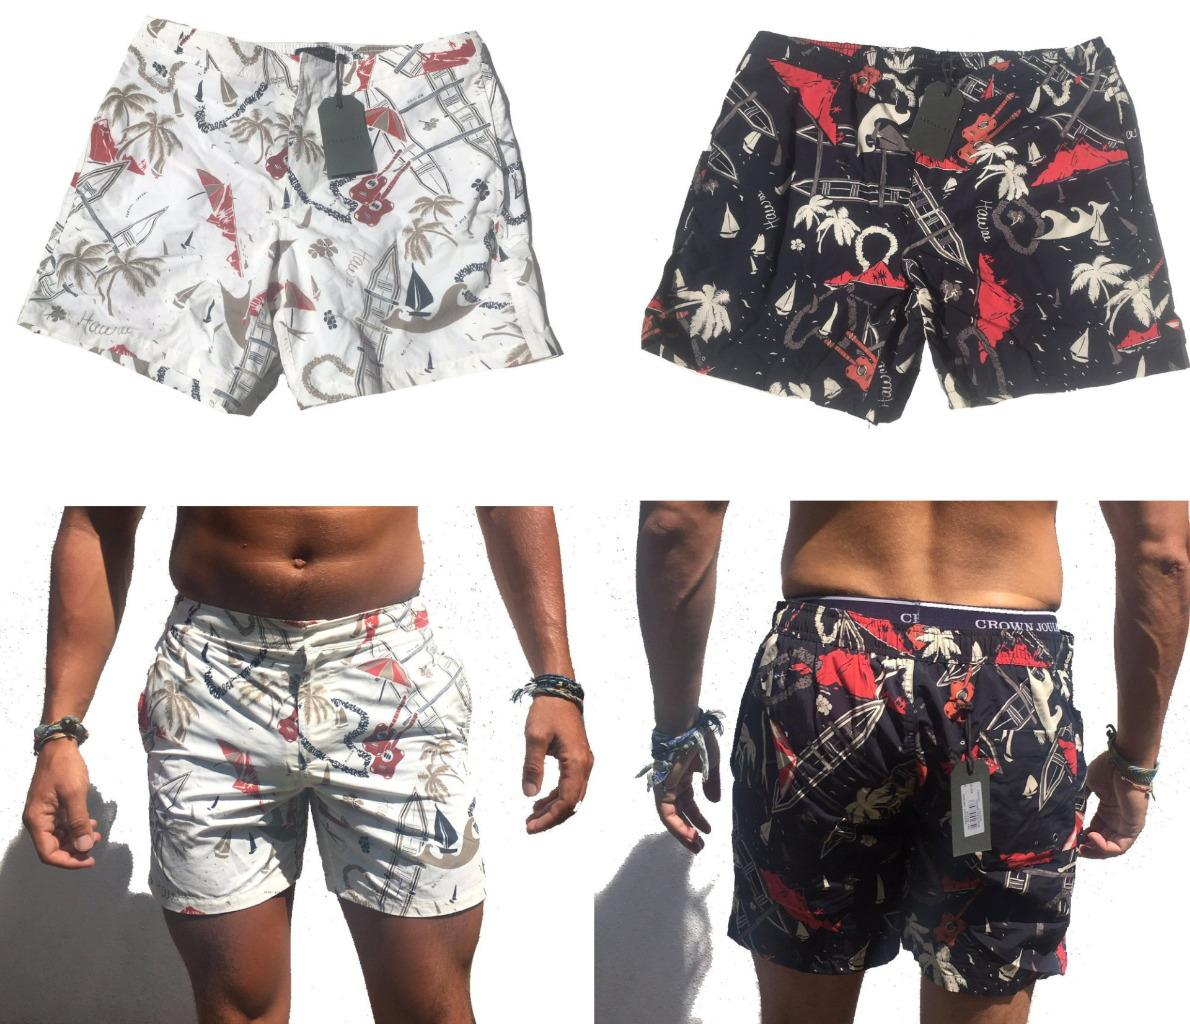 36b13cf228017 Here we have the brand new with tags All Saints Waikiki shorts in new with  tags condition.